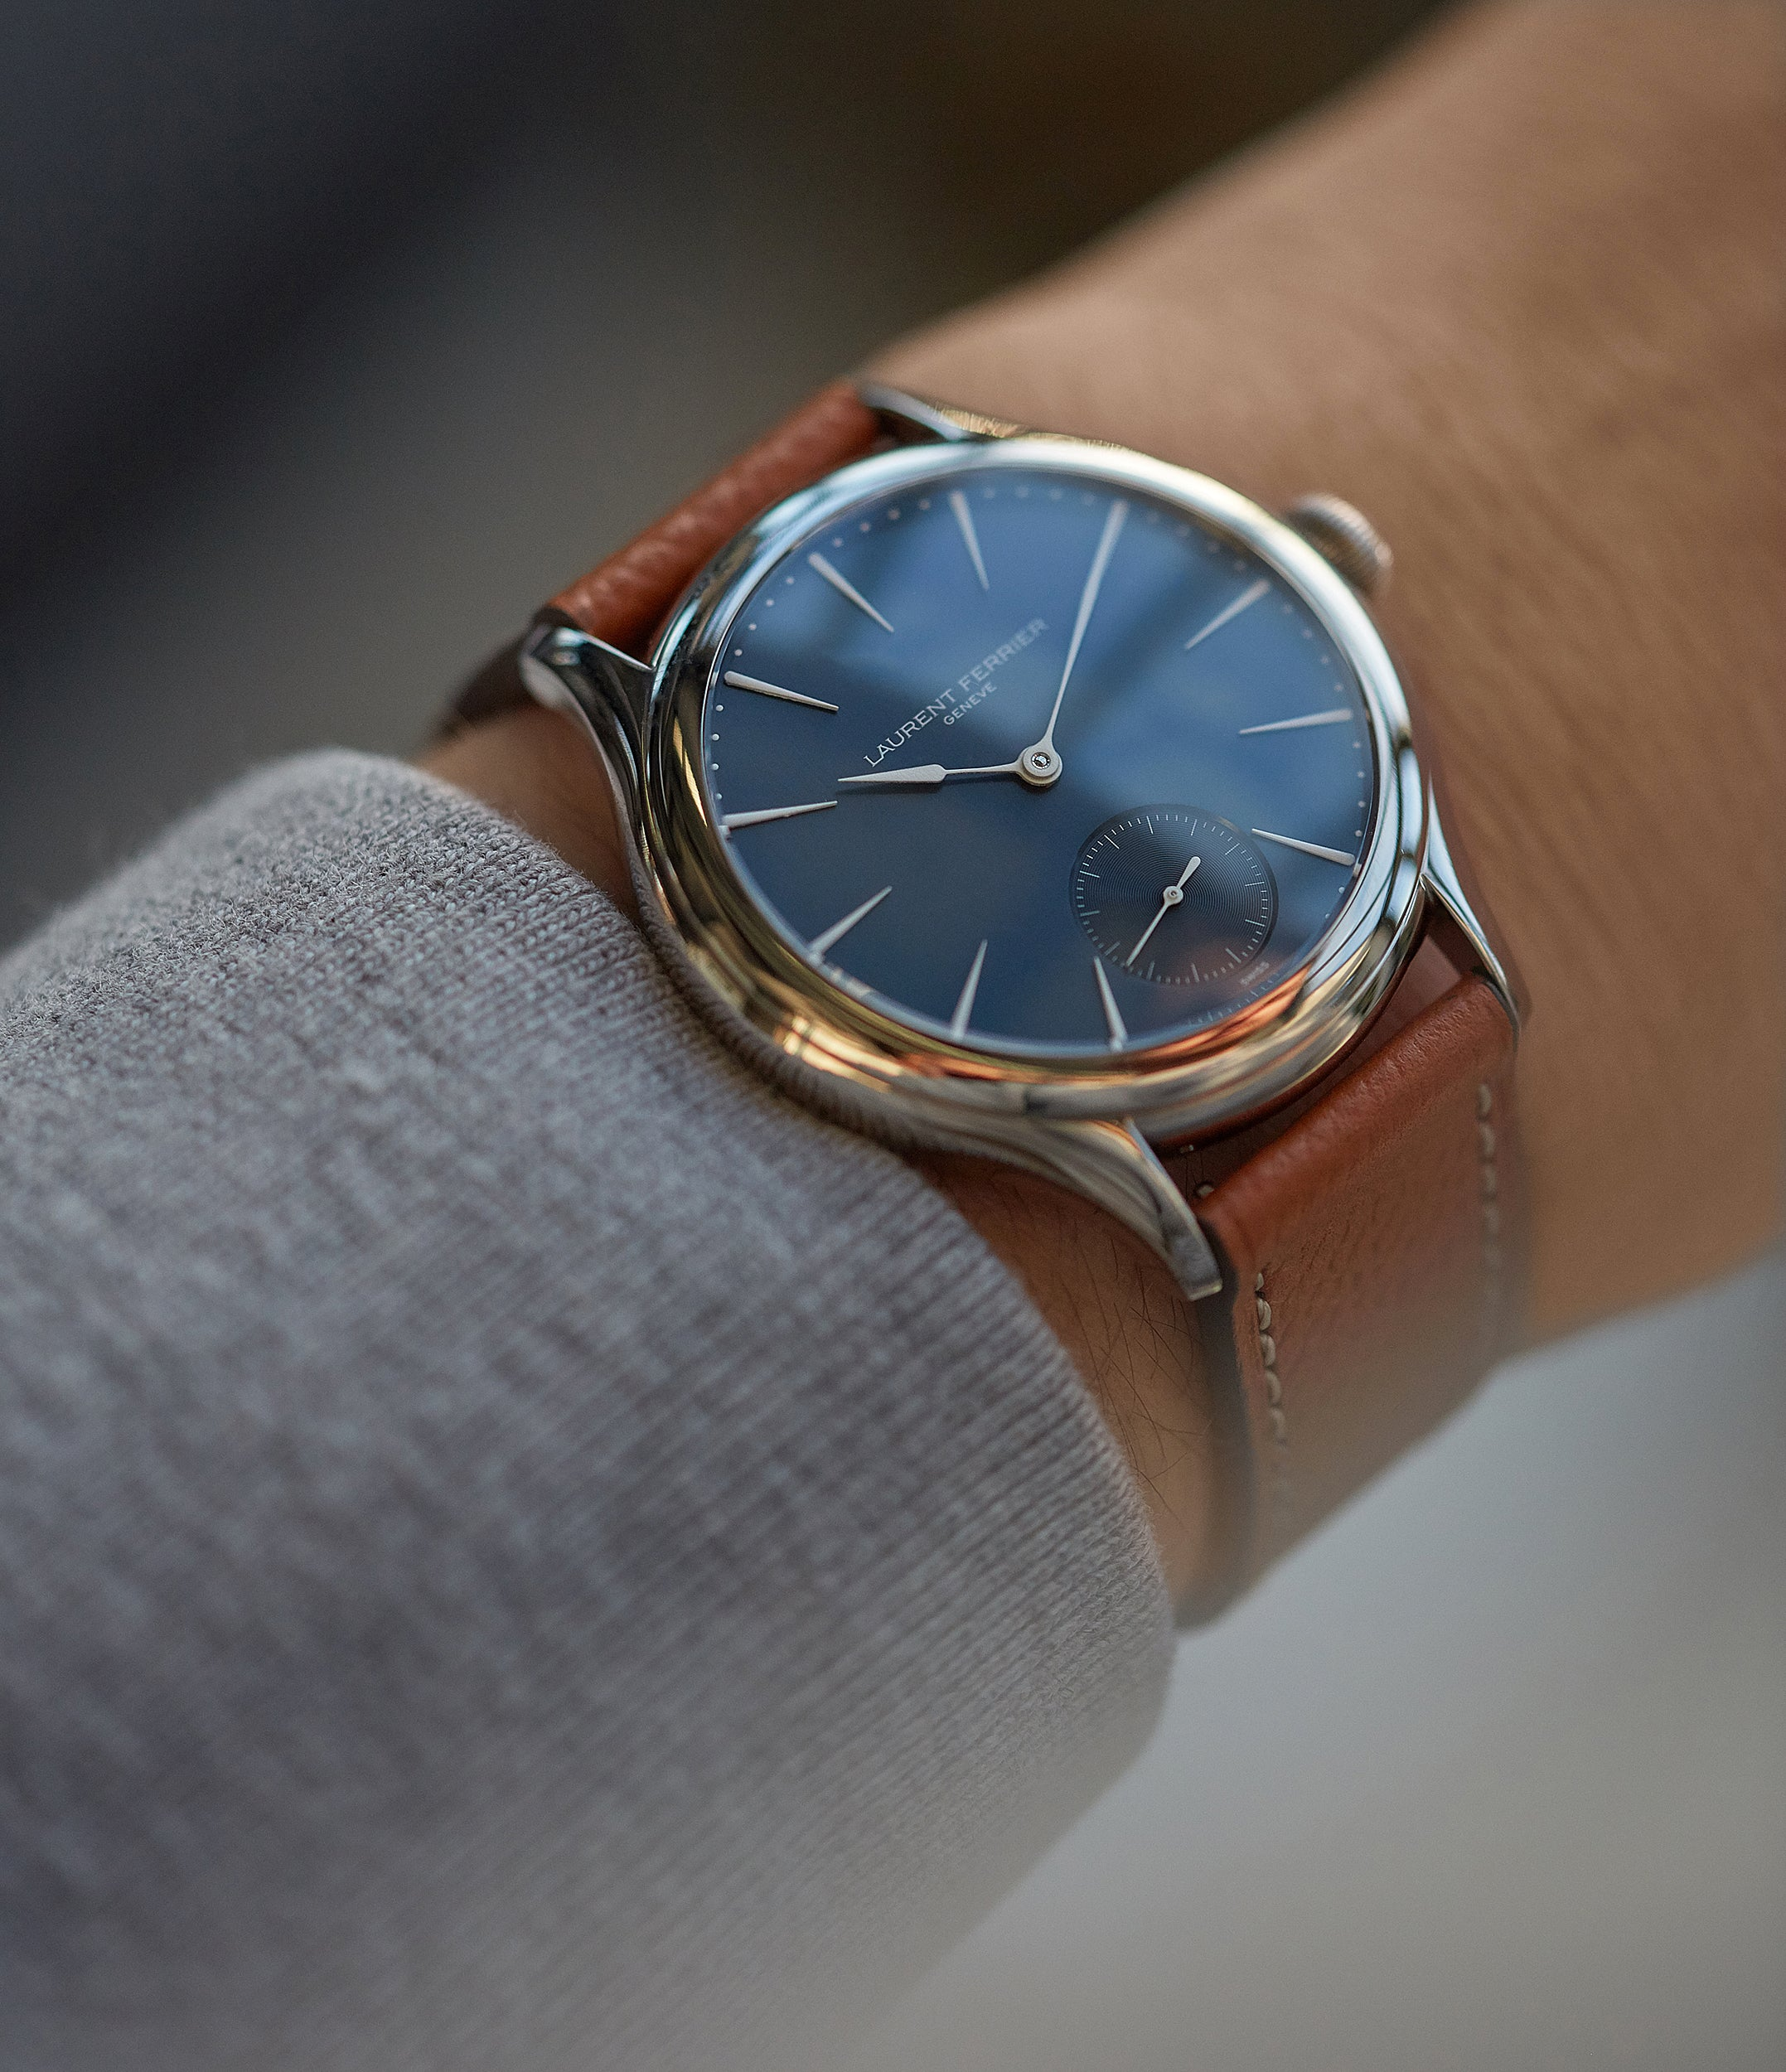 men's luxury dress watch Laurent Ferrier Galet Micro-Rotor LF229.01 blue dial white gold watch for sale online at A Collected Man London UK approved seller of independent watchmaker Laurent Ferrier